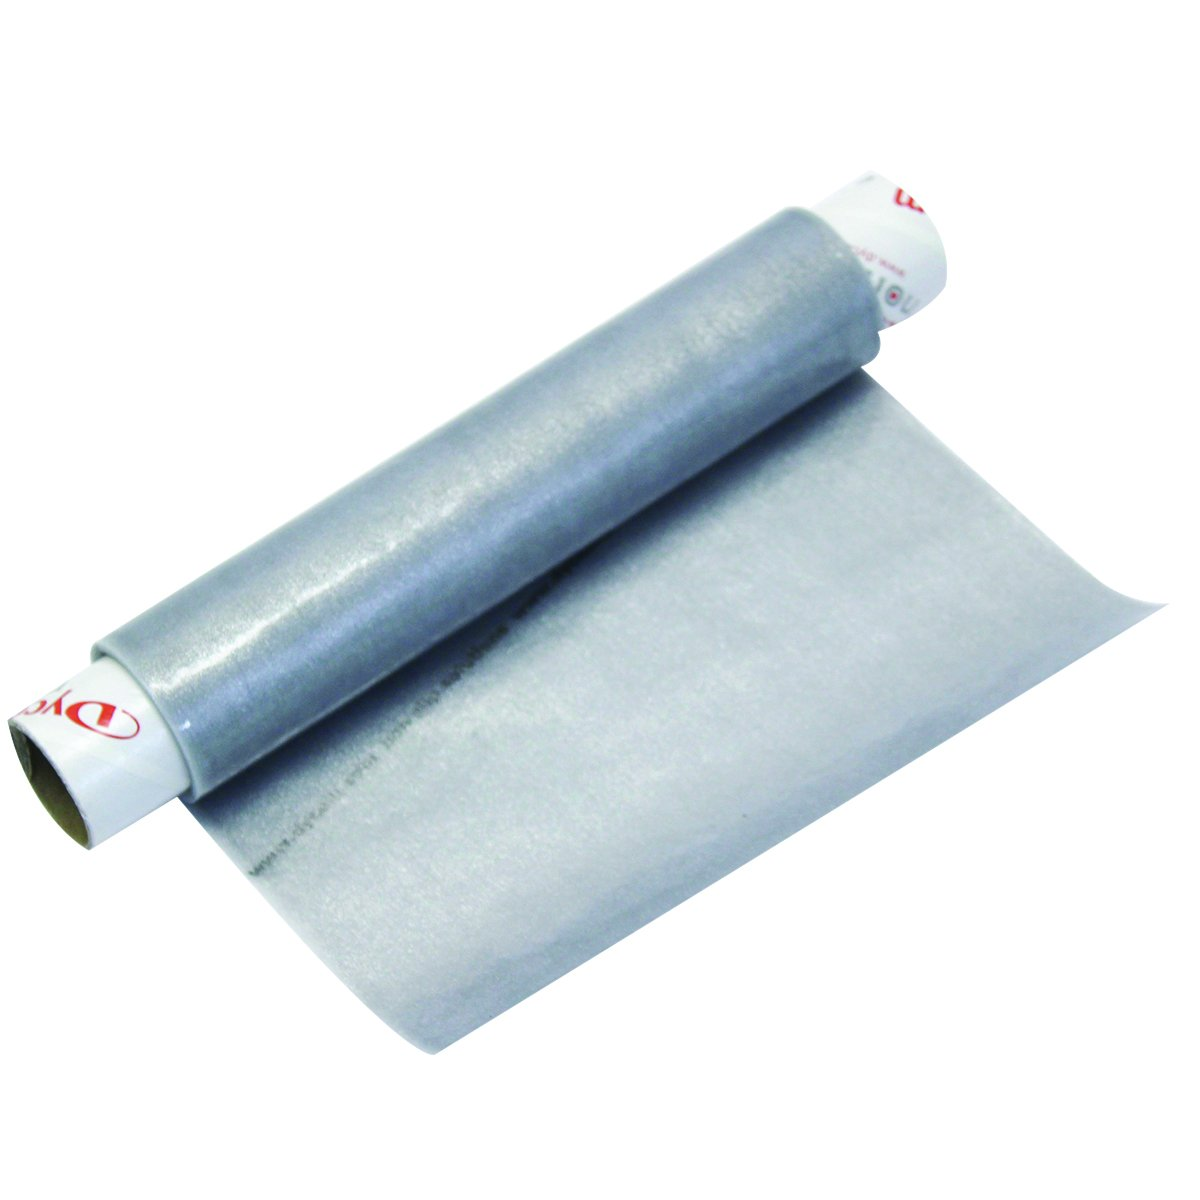 Dycem 50-1502S Non-Slip Material, Roll, 8'' x 3-1/4', Silver